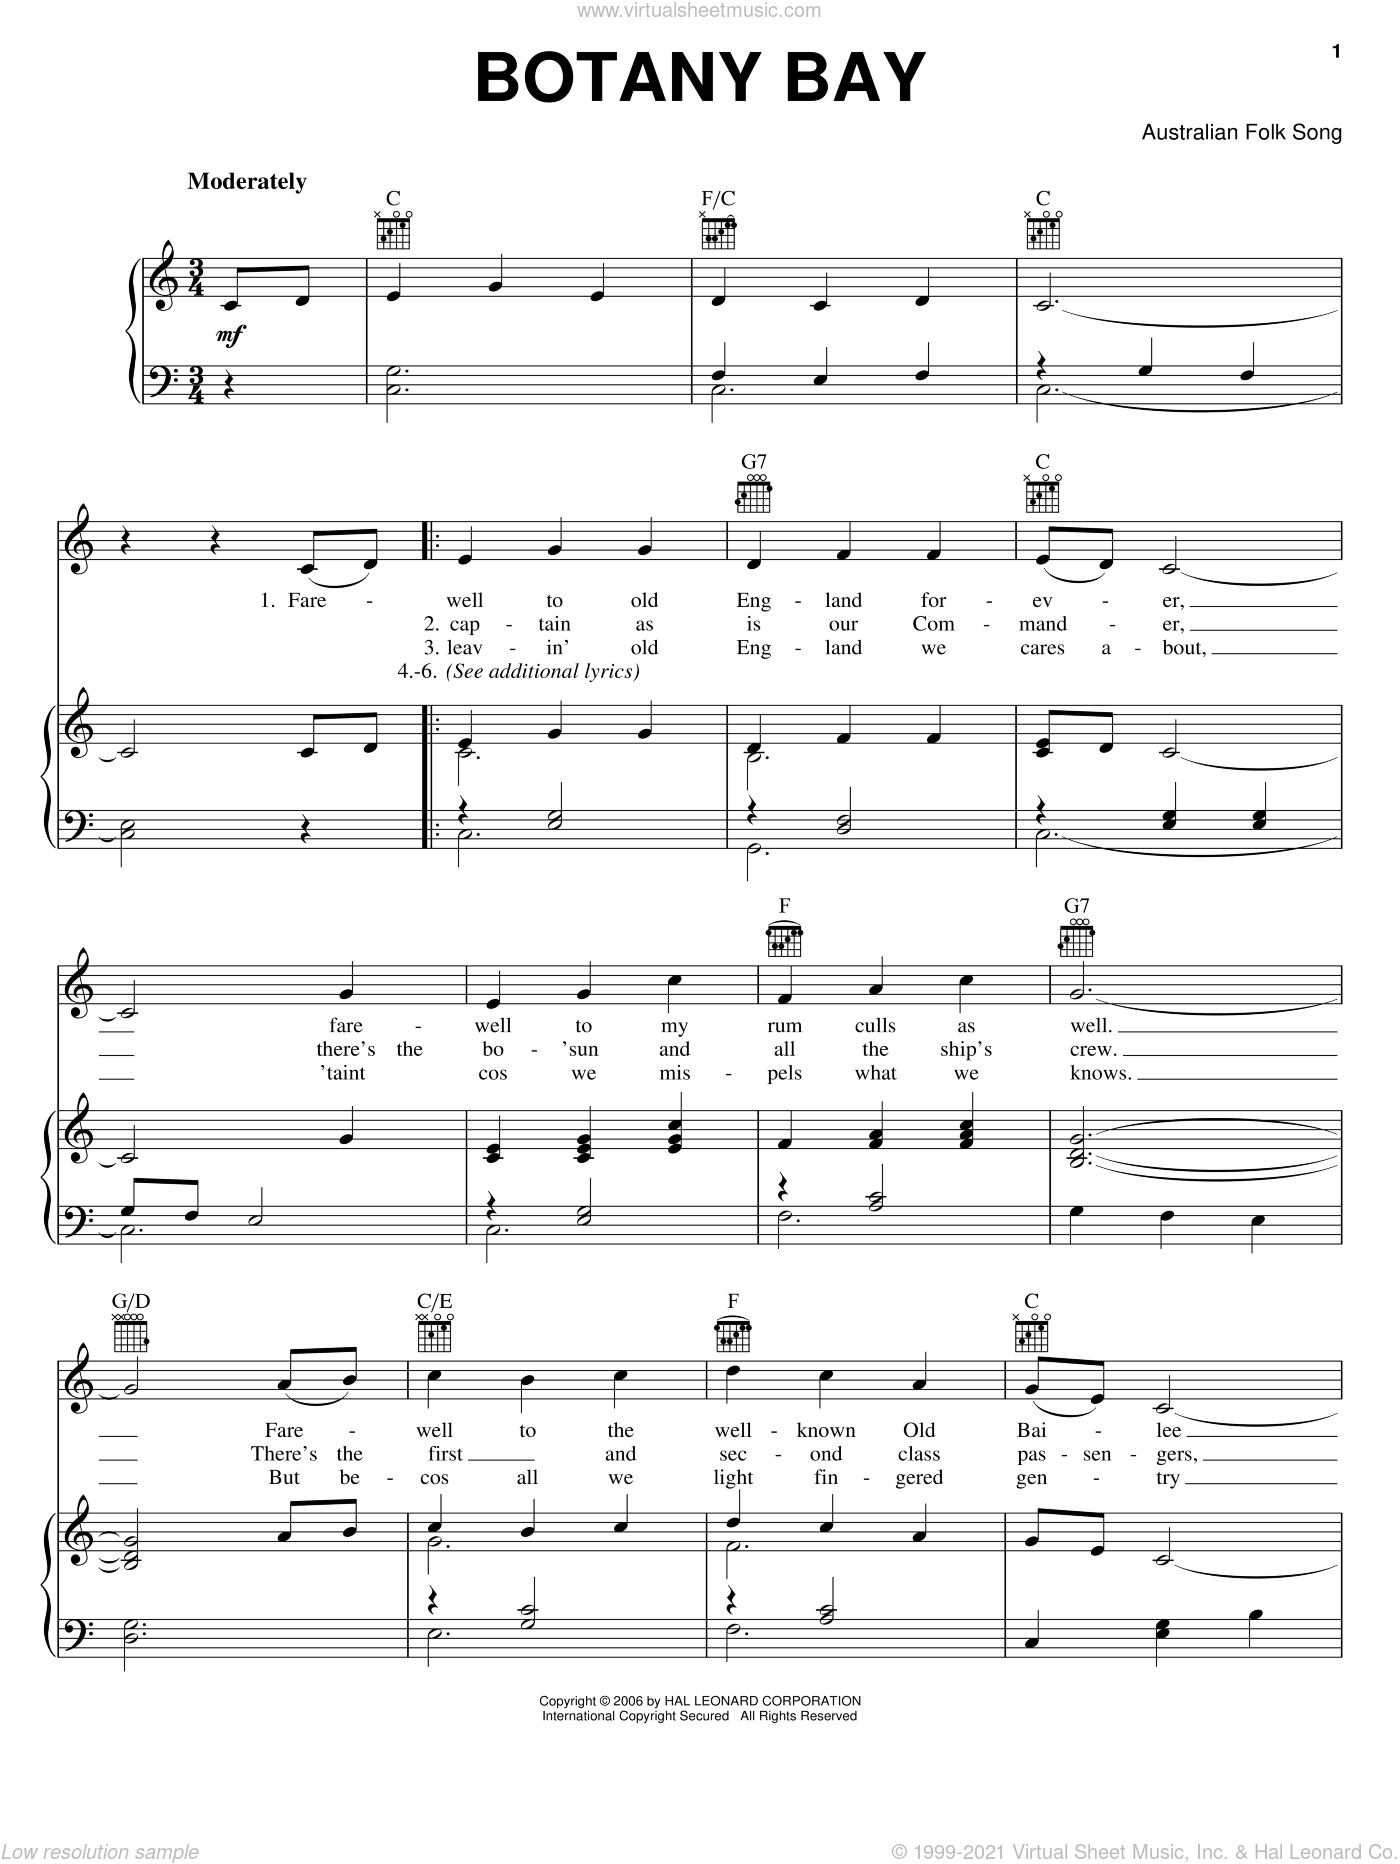 Botany Bay sheet music for voice, piano or guitar, intermediate skill level